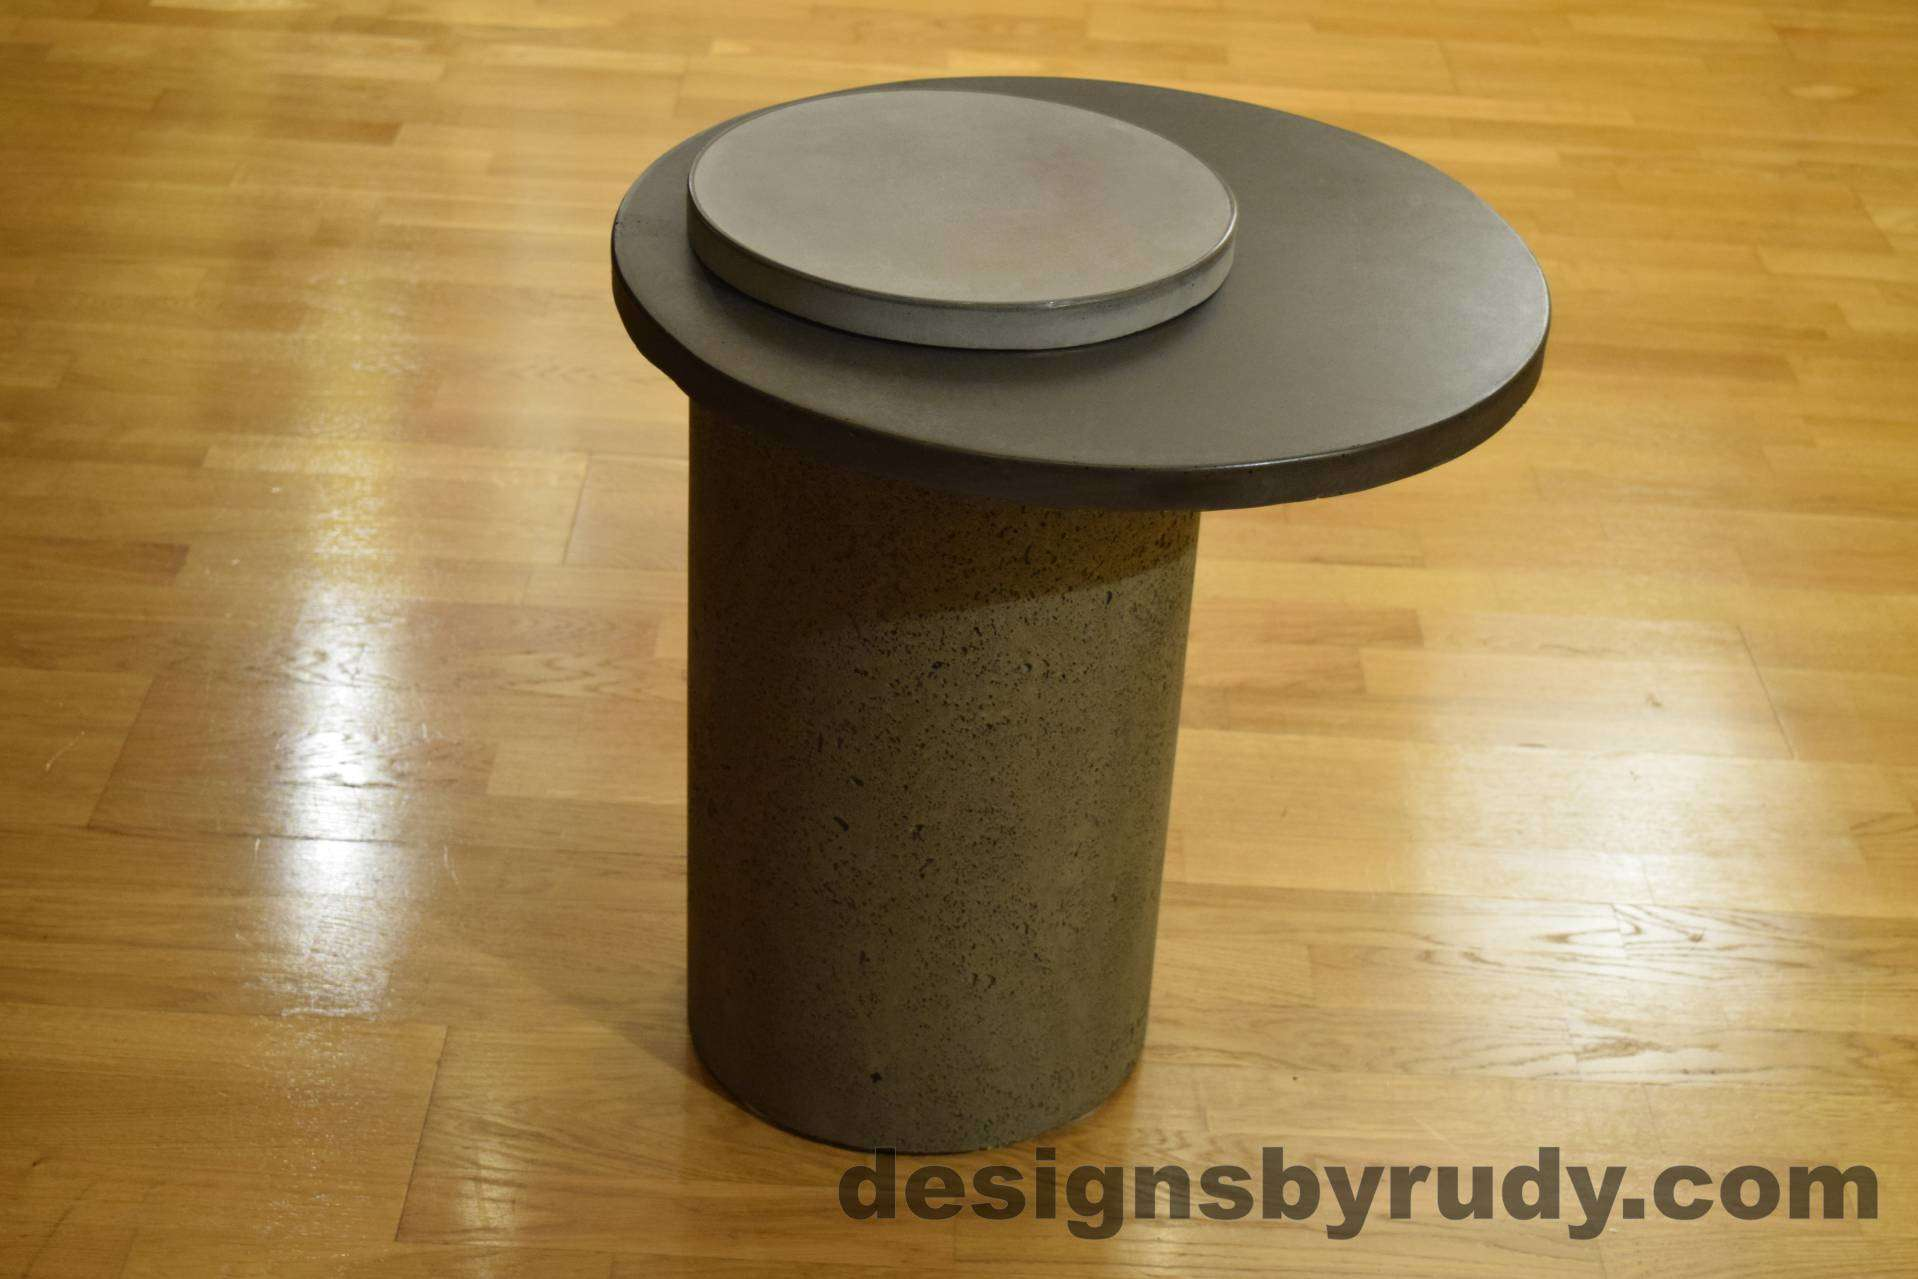 Gray Concrete Side Table, Charcoal Top and Gray Cap, Pillars model, Designs by Rudy L